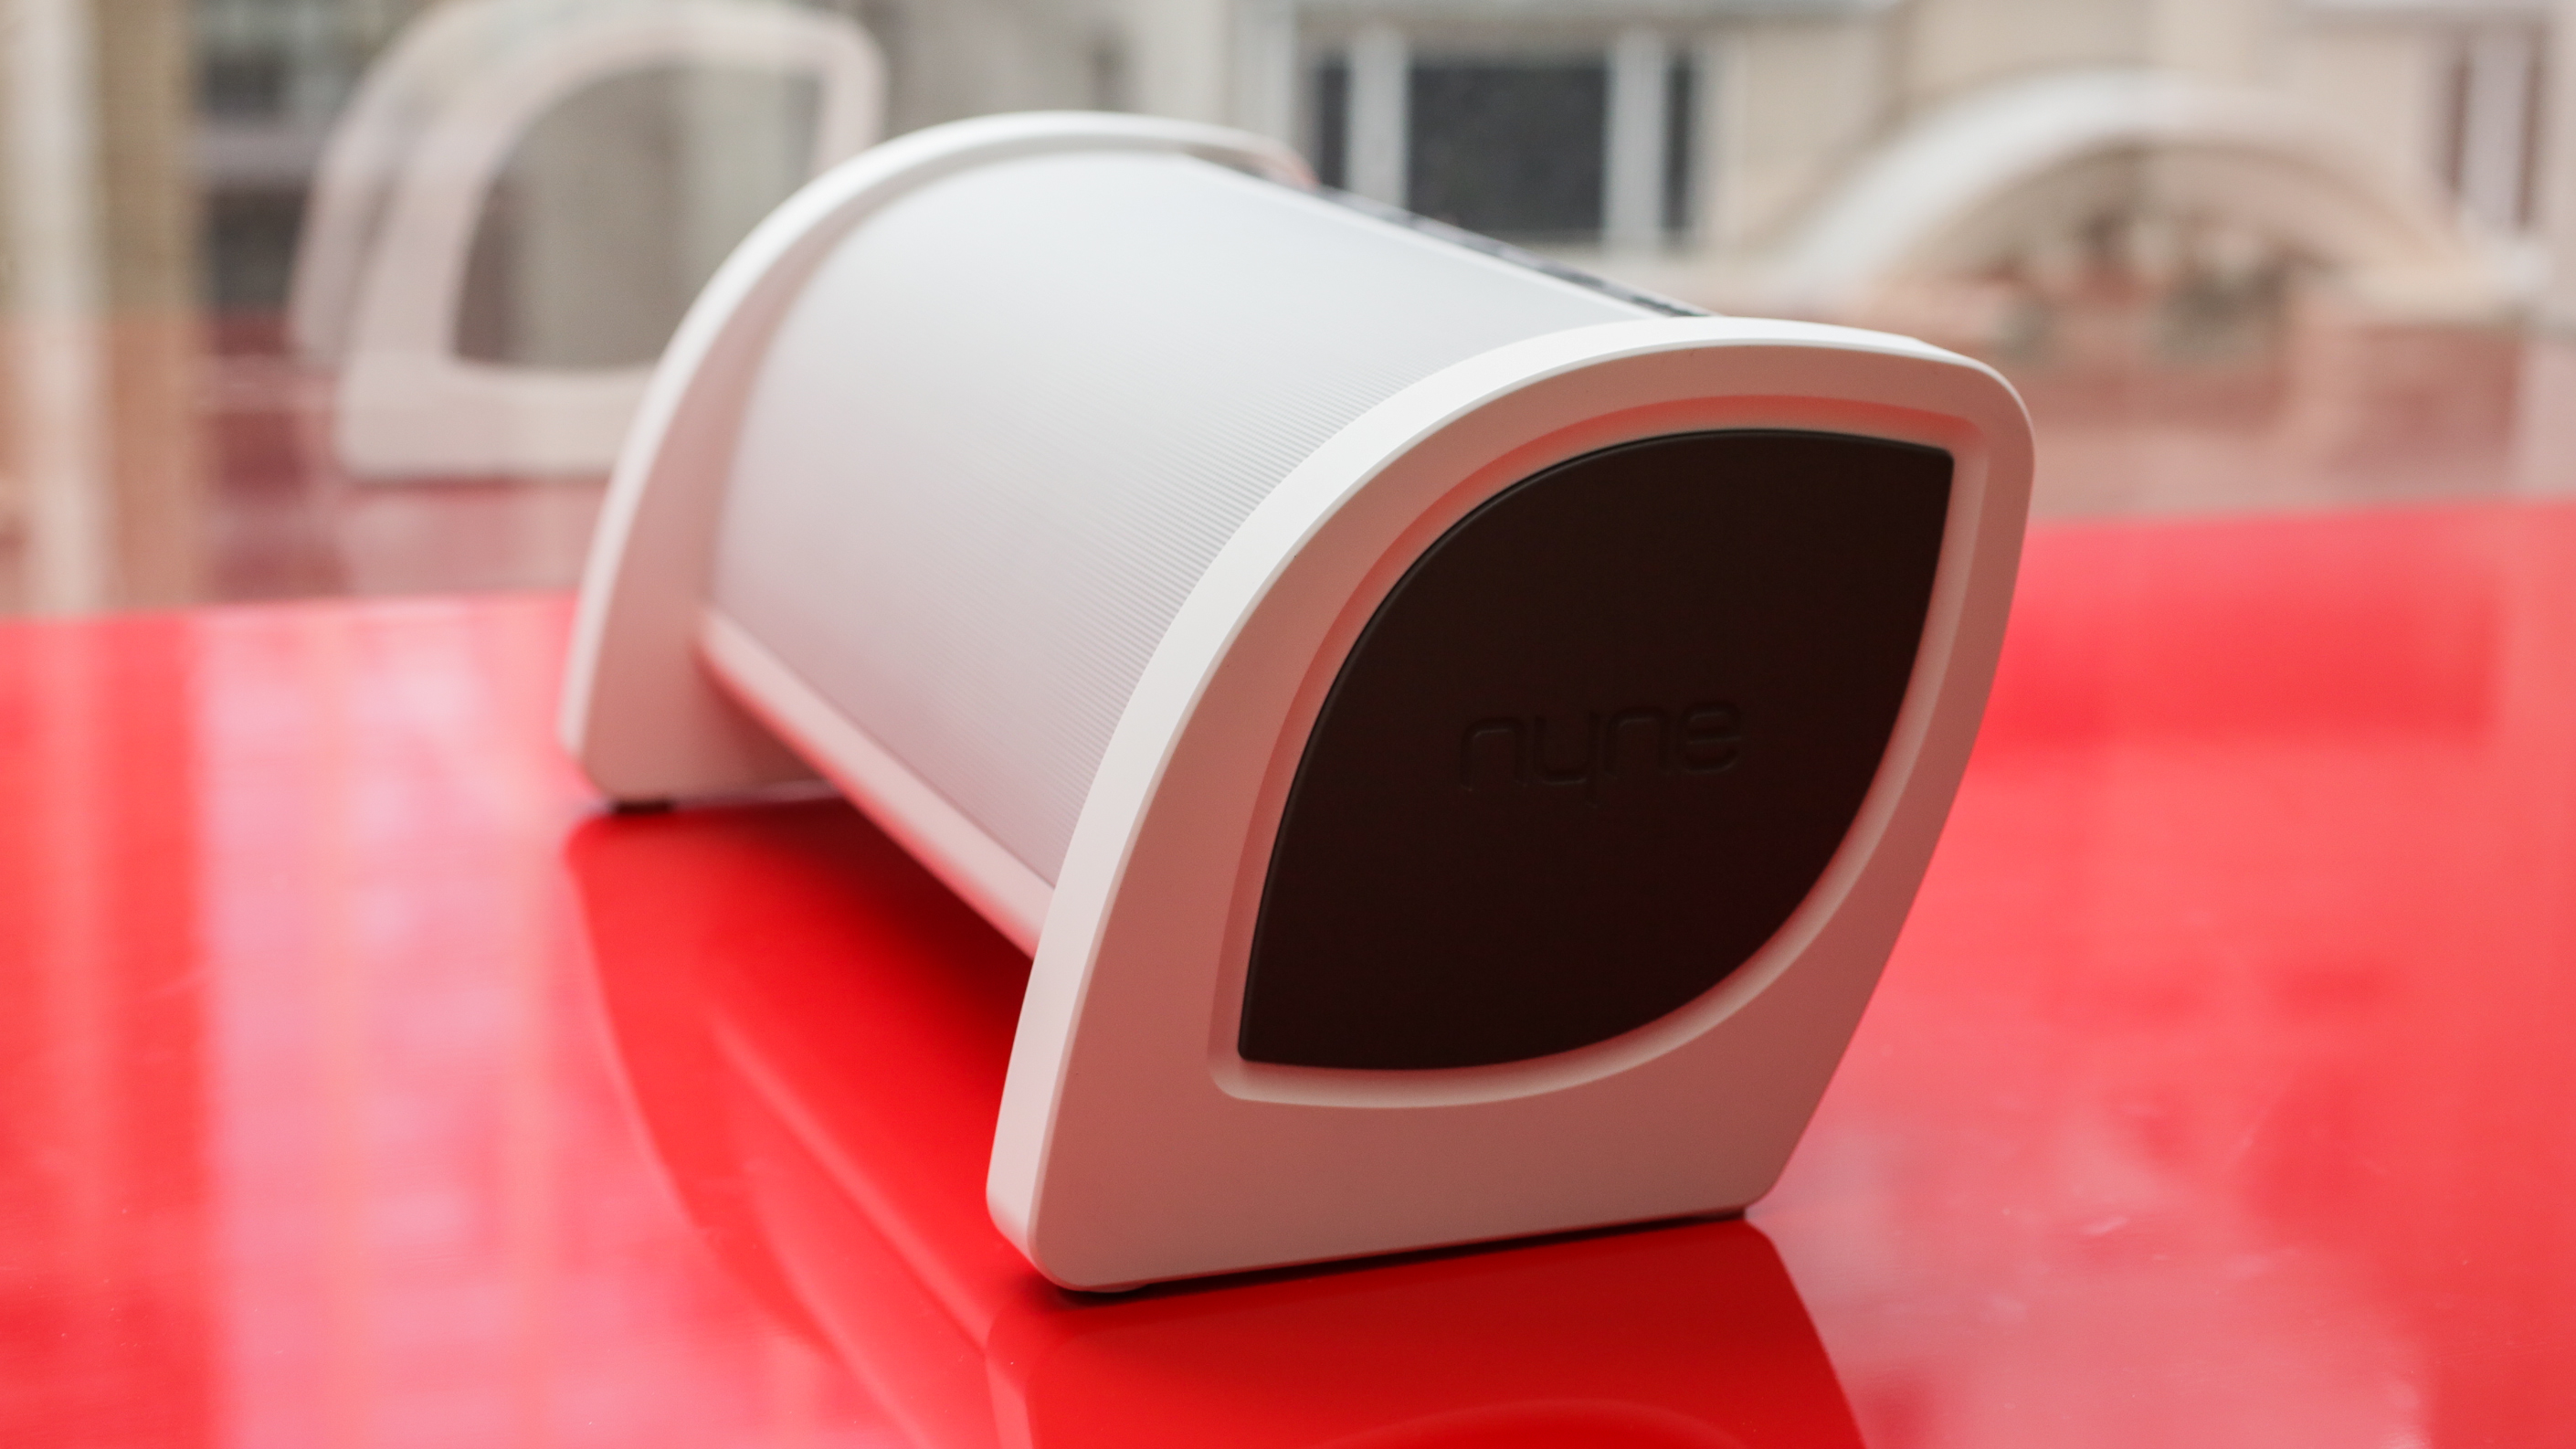 Modestly priced Bluetooth speaker that delivers meaty sound